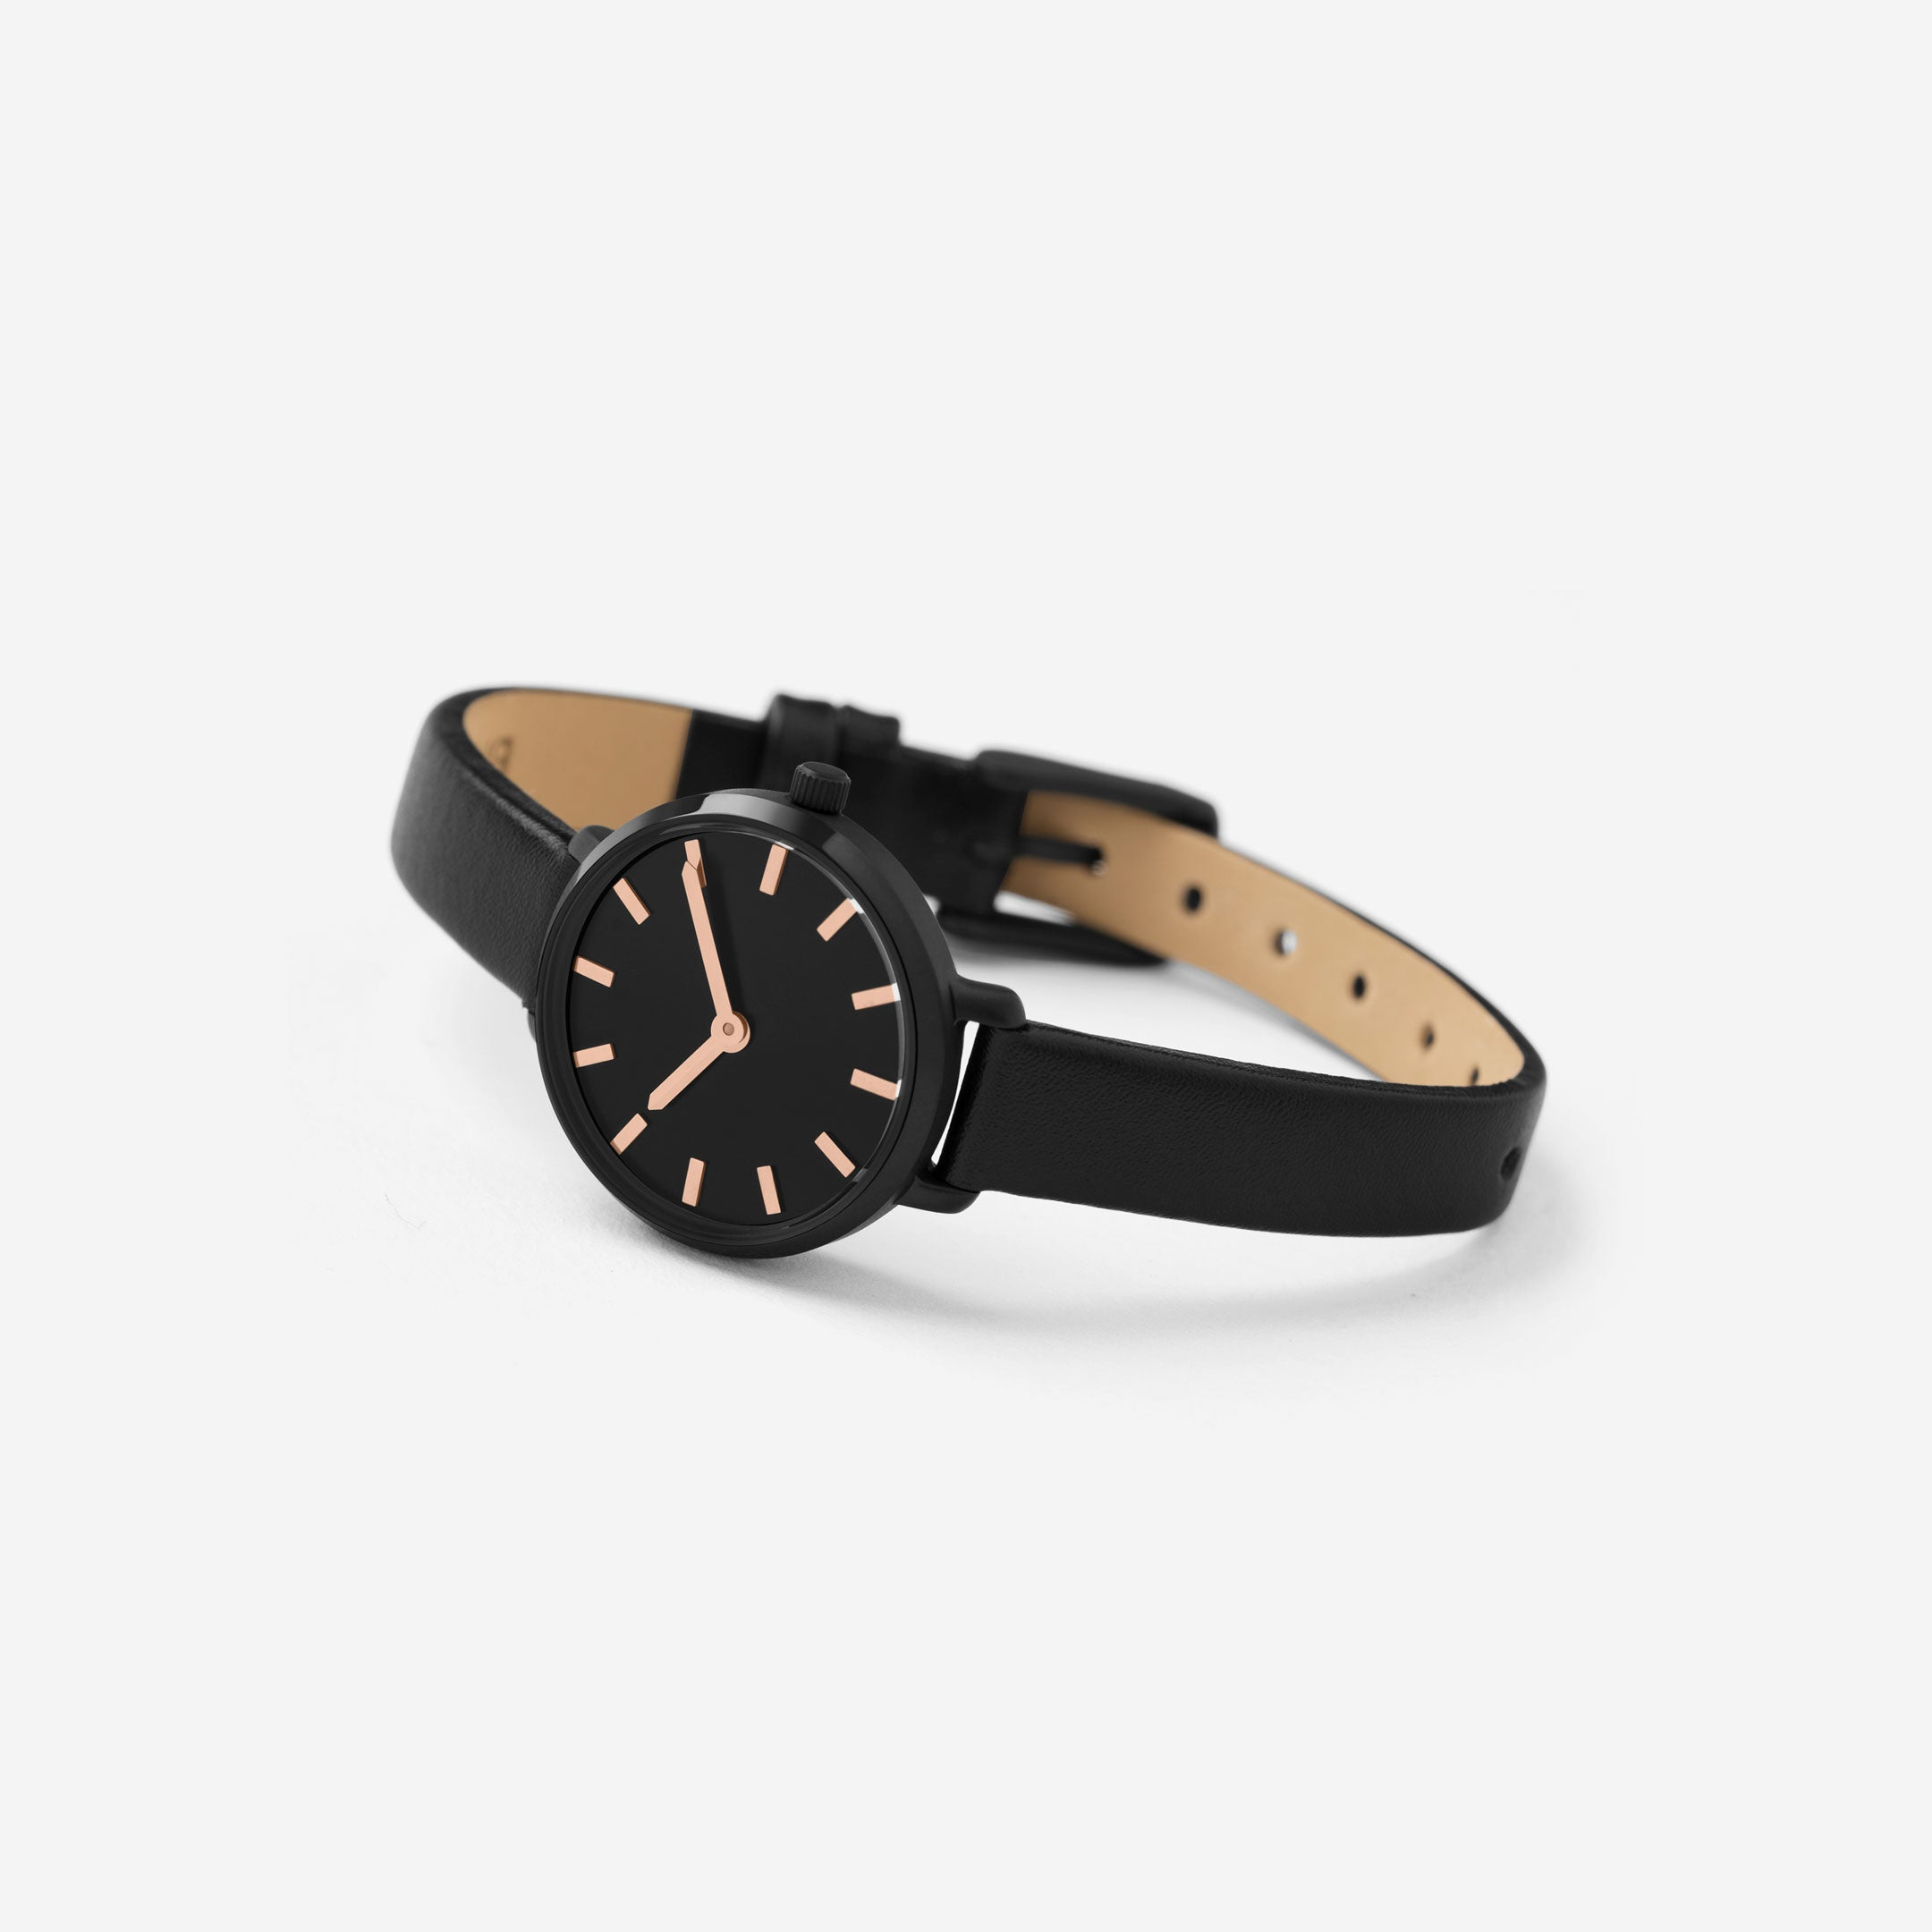 //cdn.shopify.com/s/files/1/0879/6650/products/breda-beverly-1730c-black-black-leather-watch-angle_1024x1024.jpg?v=1522789870